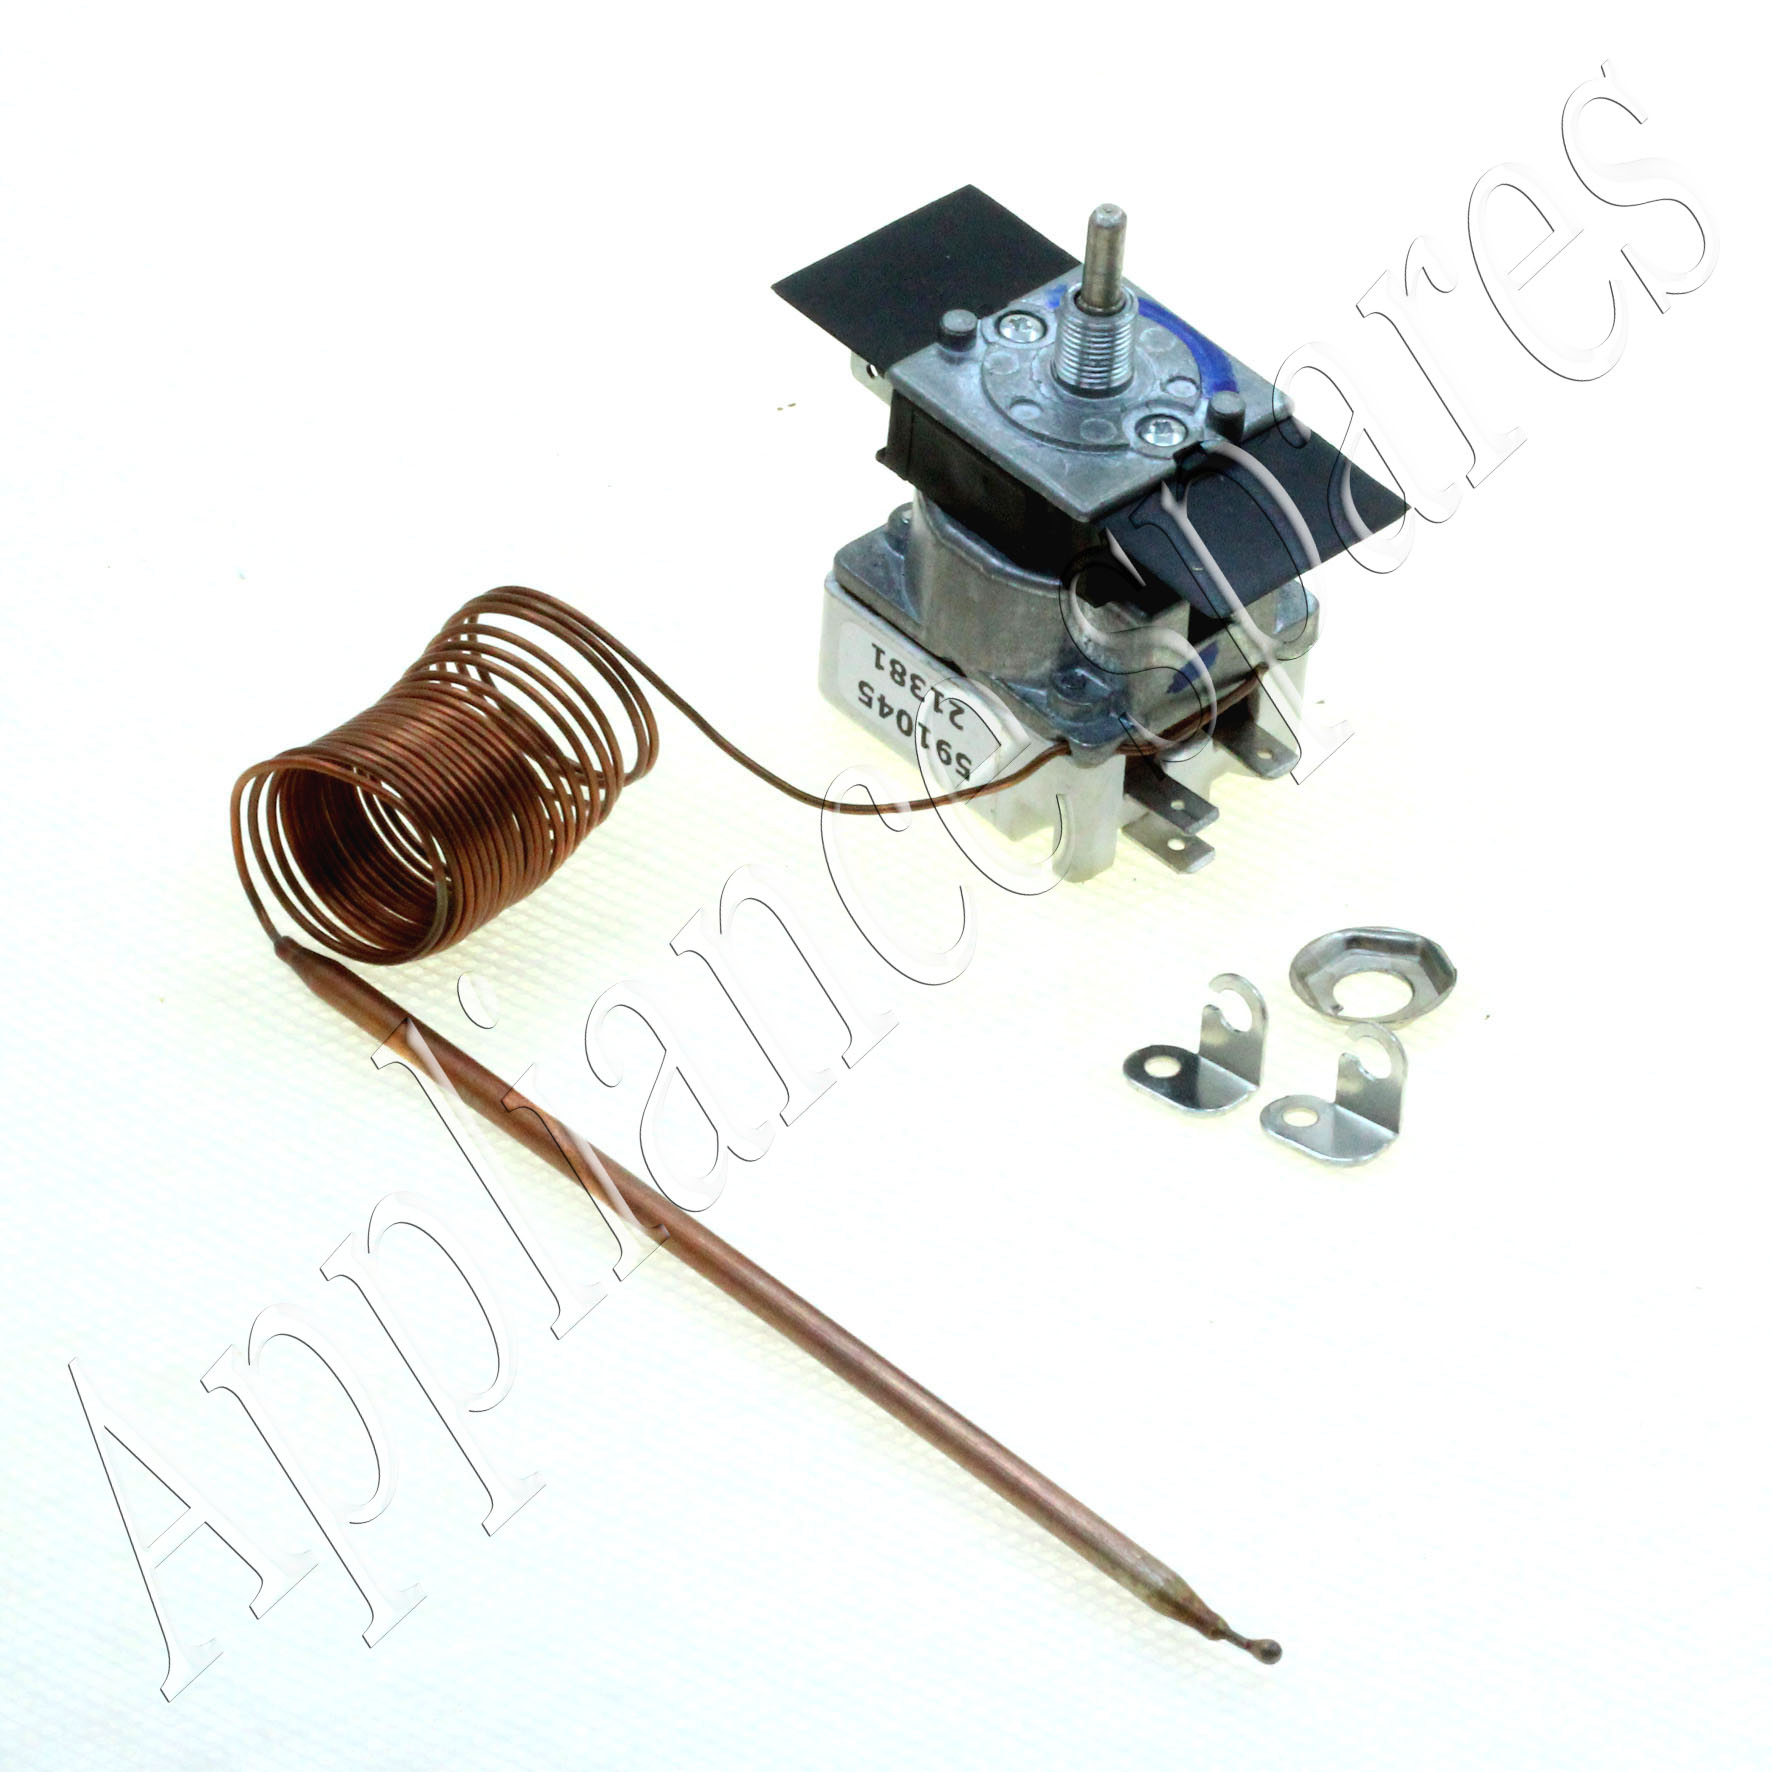 12453 thermostat 71th thin shaft 591045 lategan and van biljoens satchwell thermostat wiring diagram at readyjetset.co